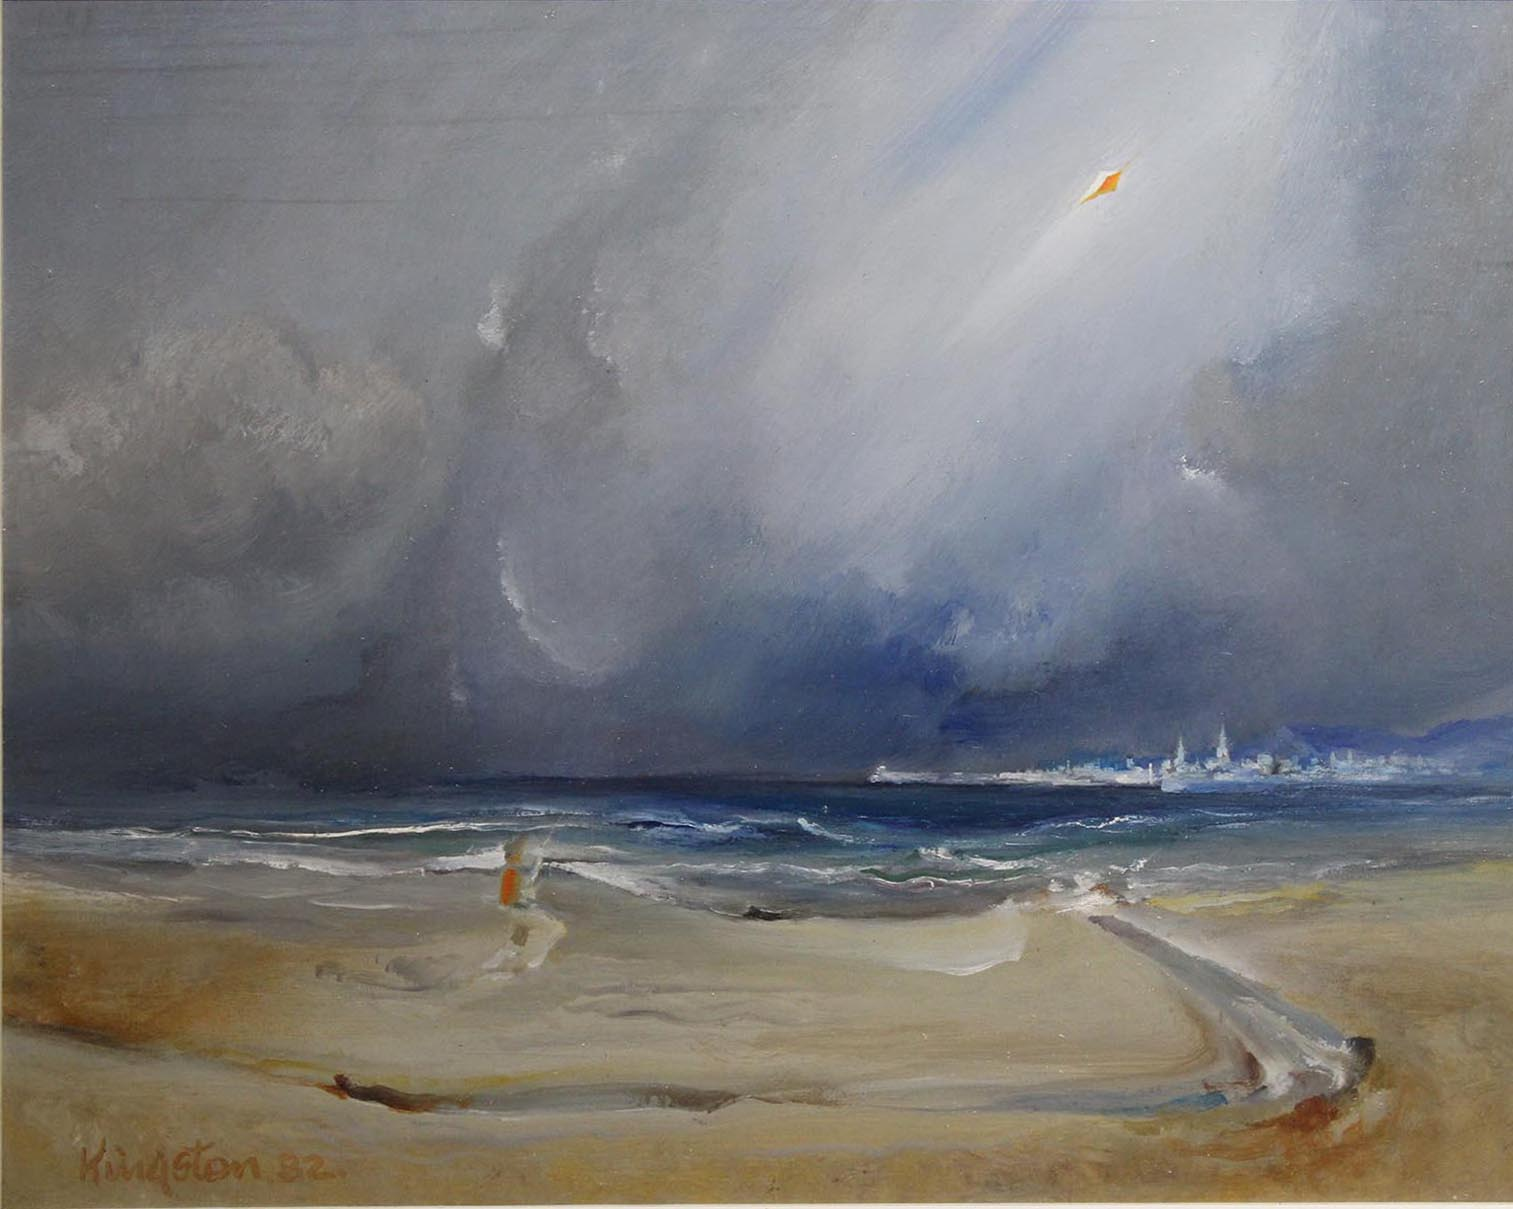 """Lot 54 - Richard Kingston SPACE FOR THE KITE FLYER Oil on board, 15"""" x 18 1/2"""" (38.1 x 46.4 cm), signed &"""